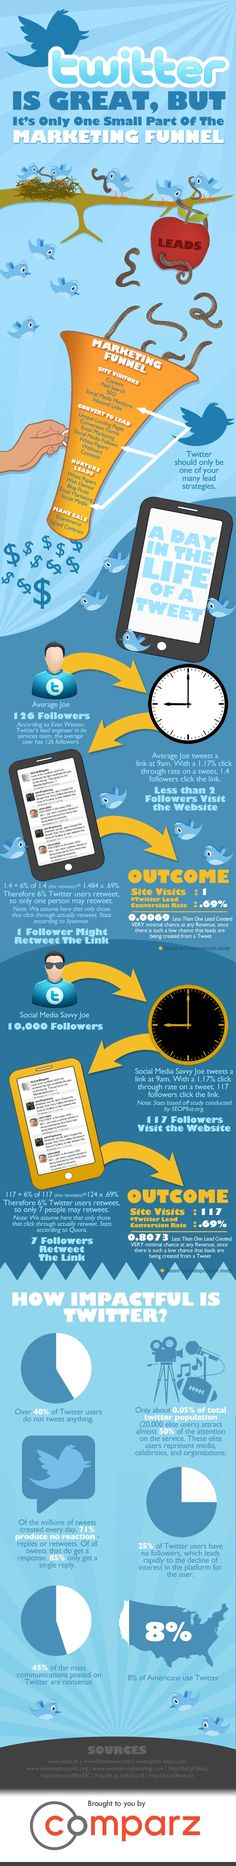 Twitter is just one piece of the online marketing puzzle